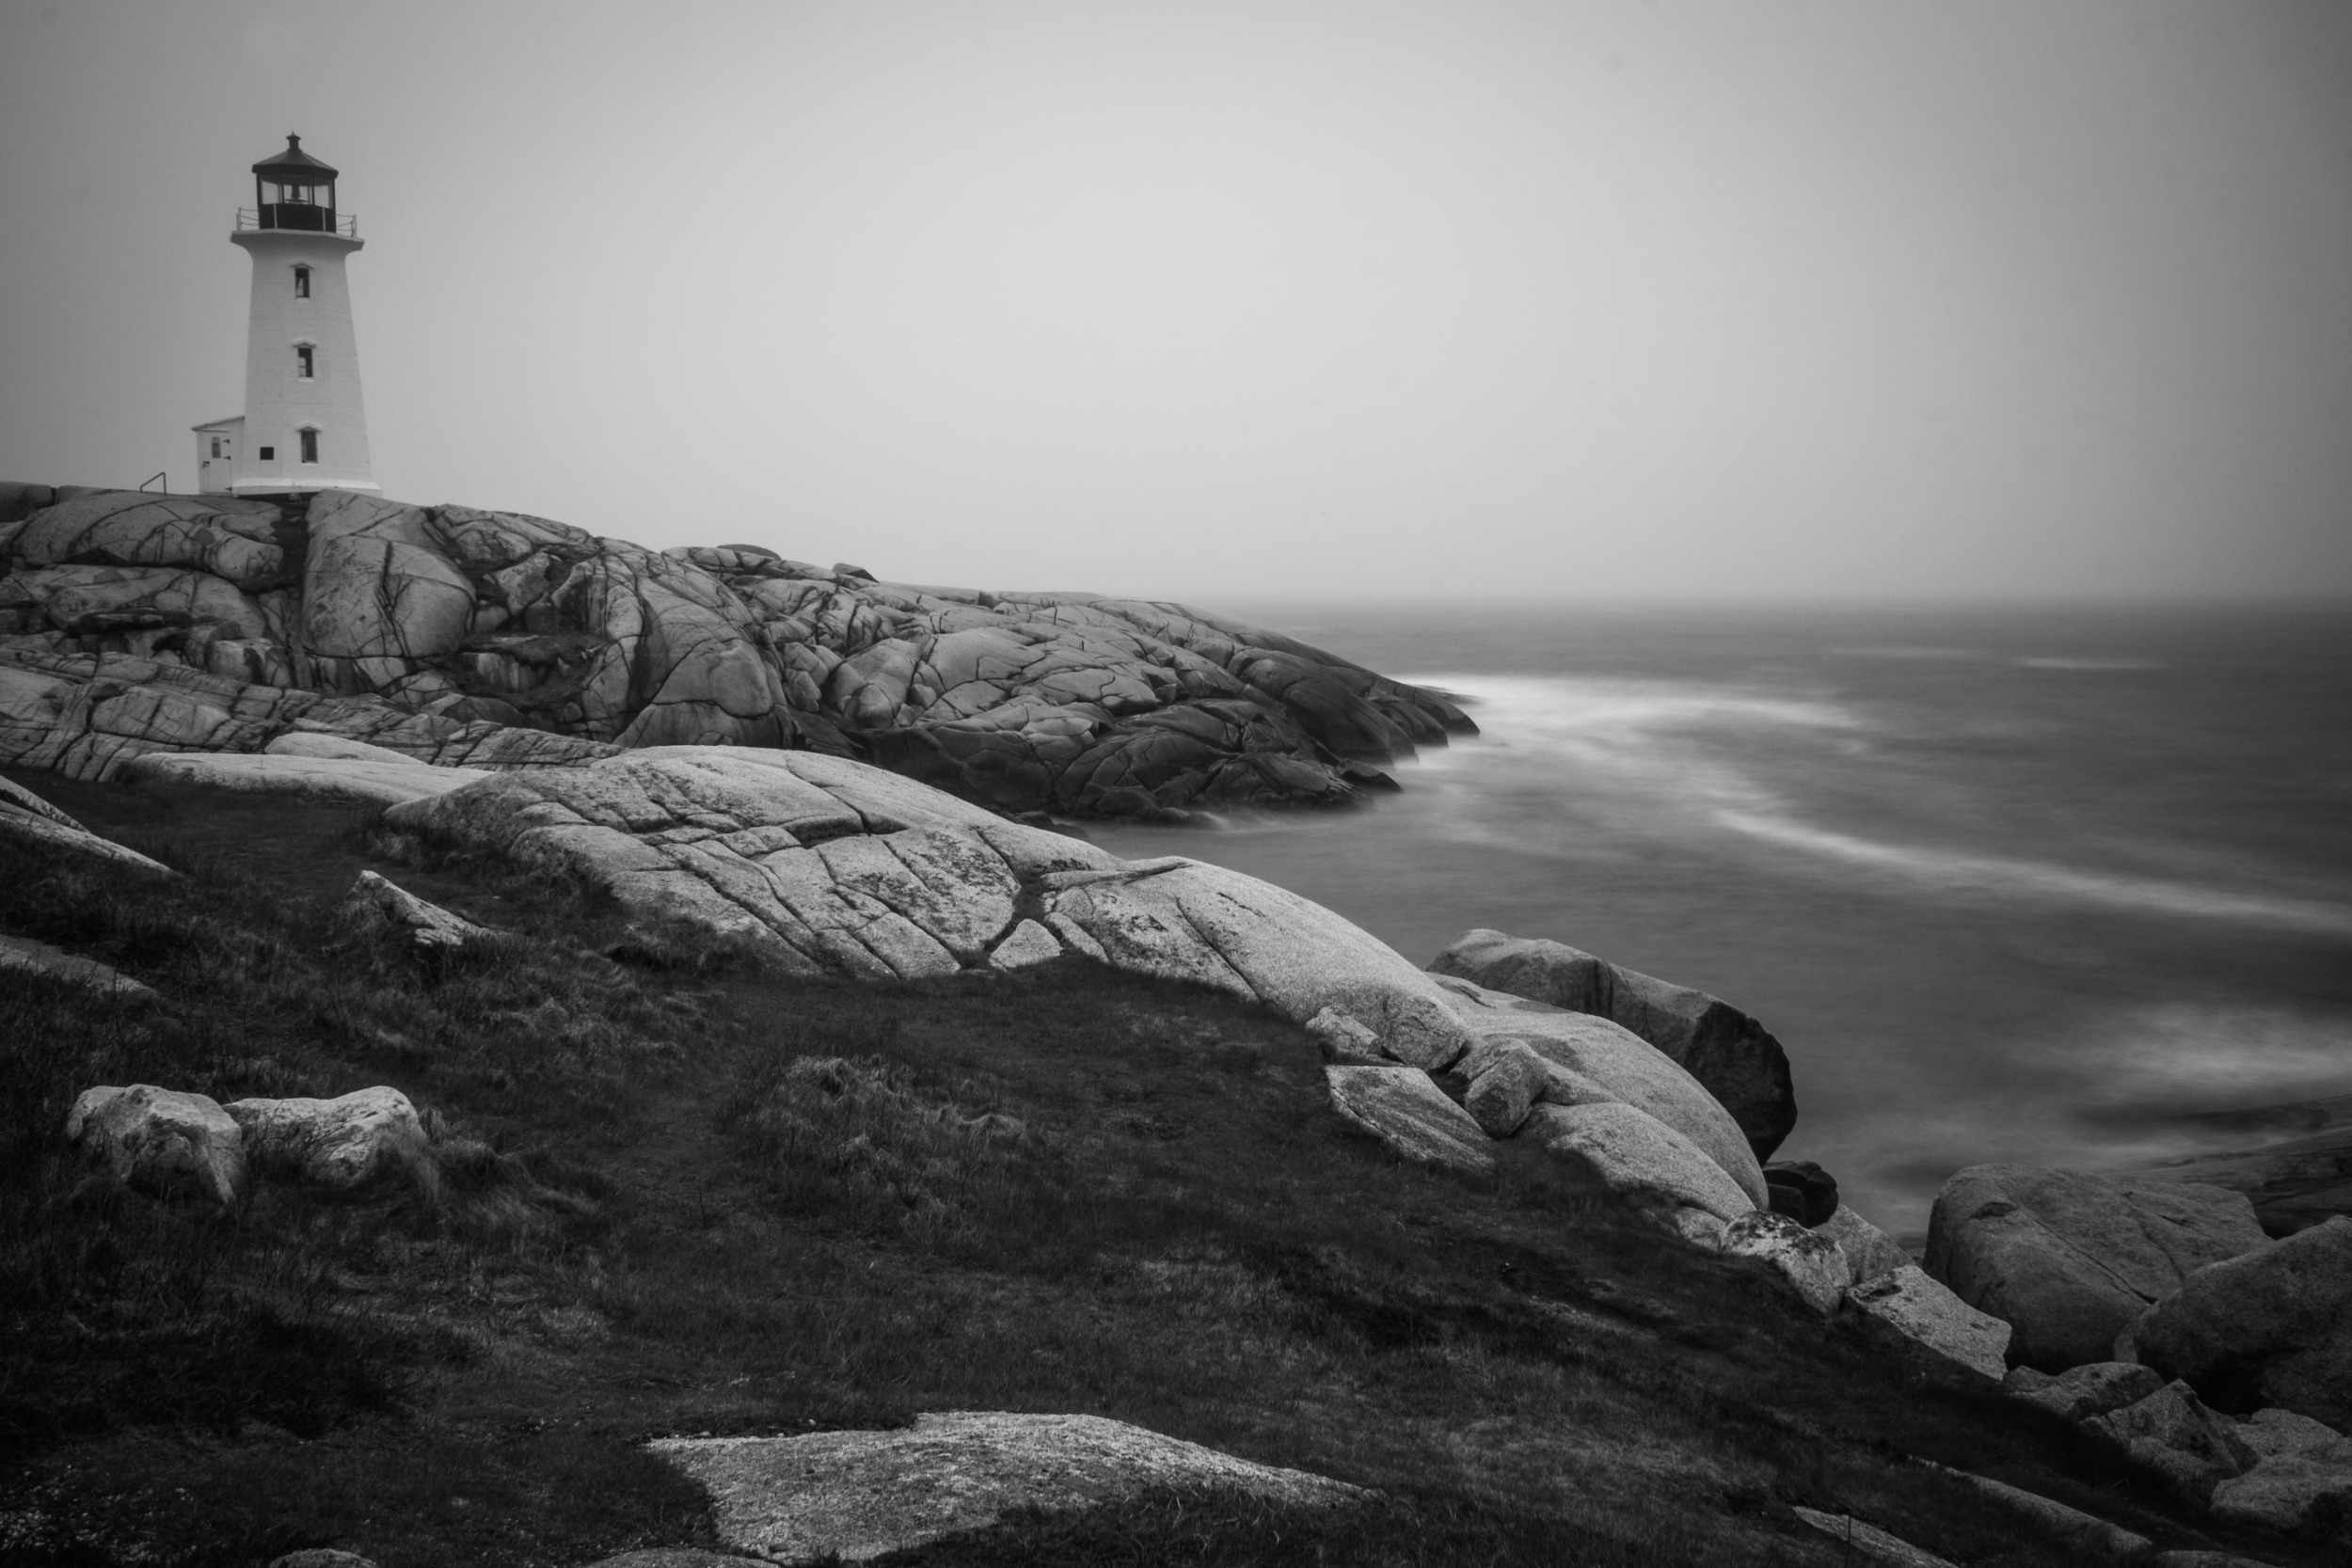 Peggy's Cove on a rainy and foggy day.